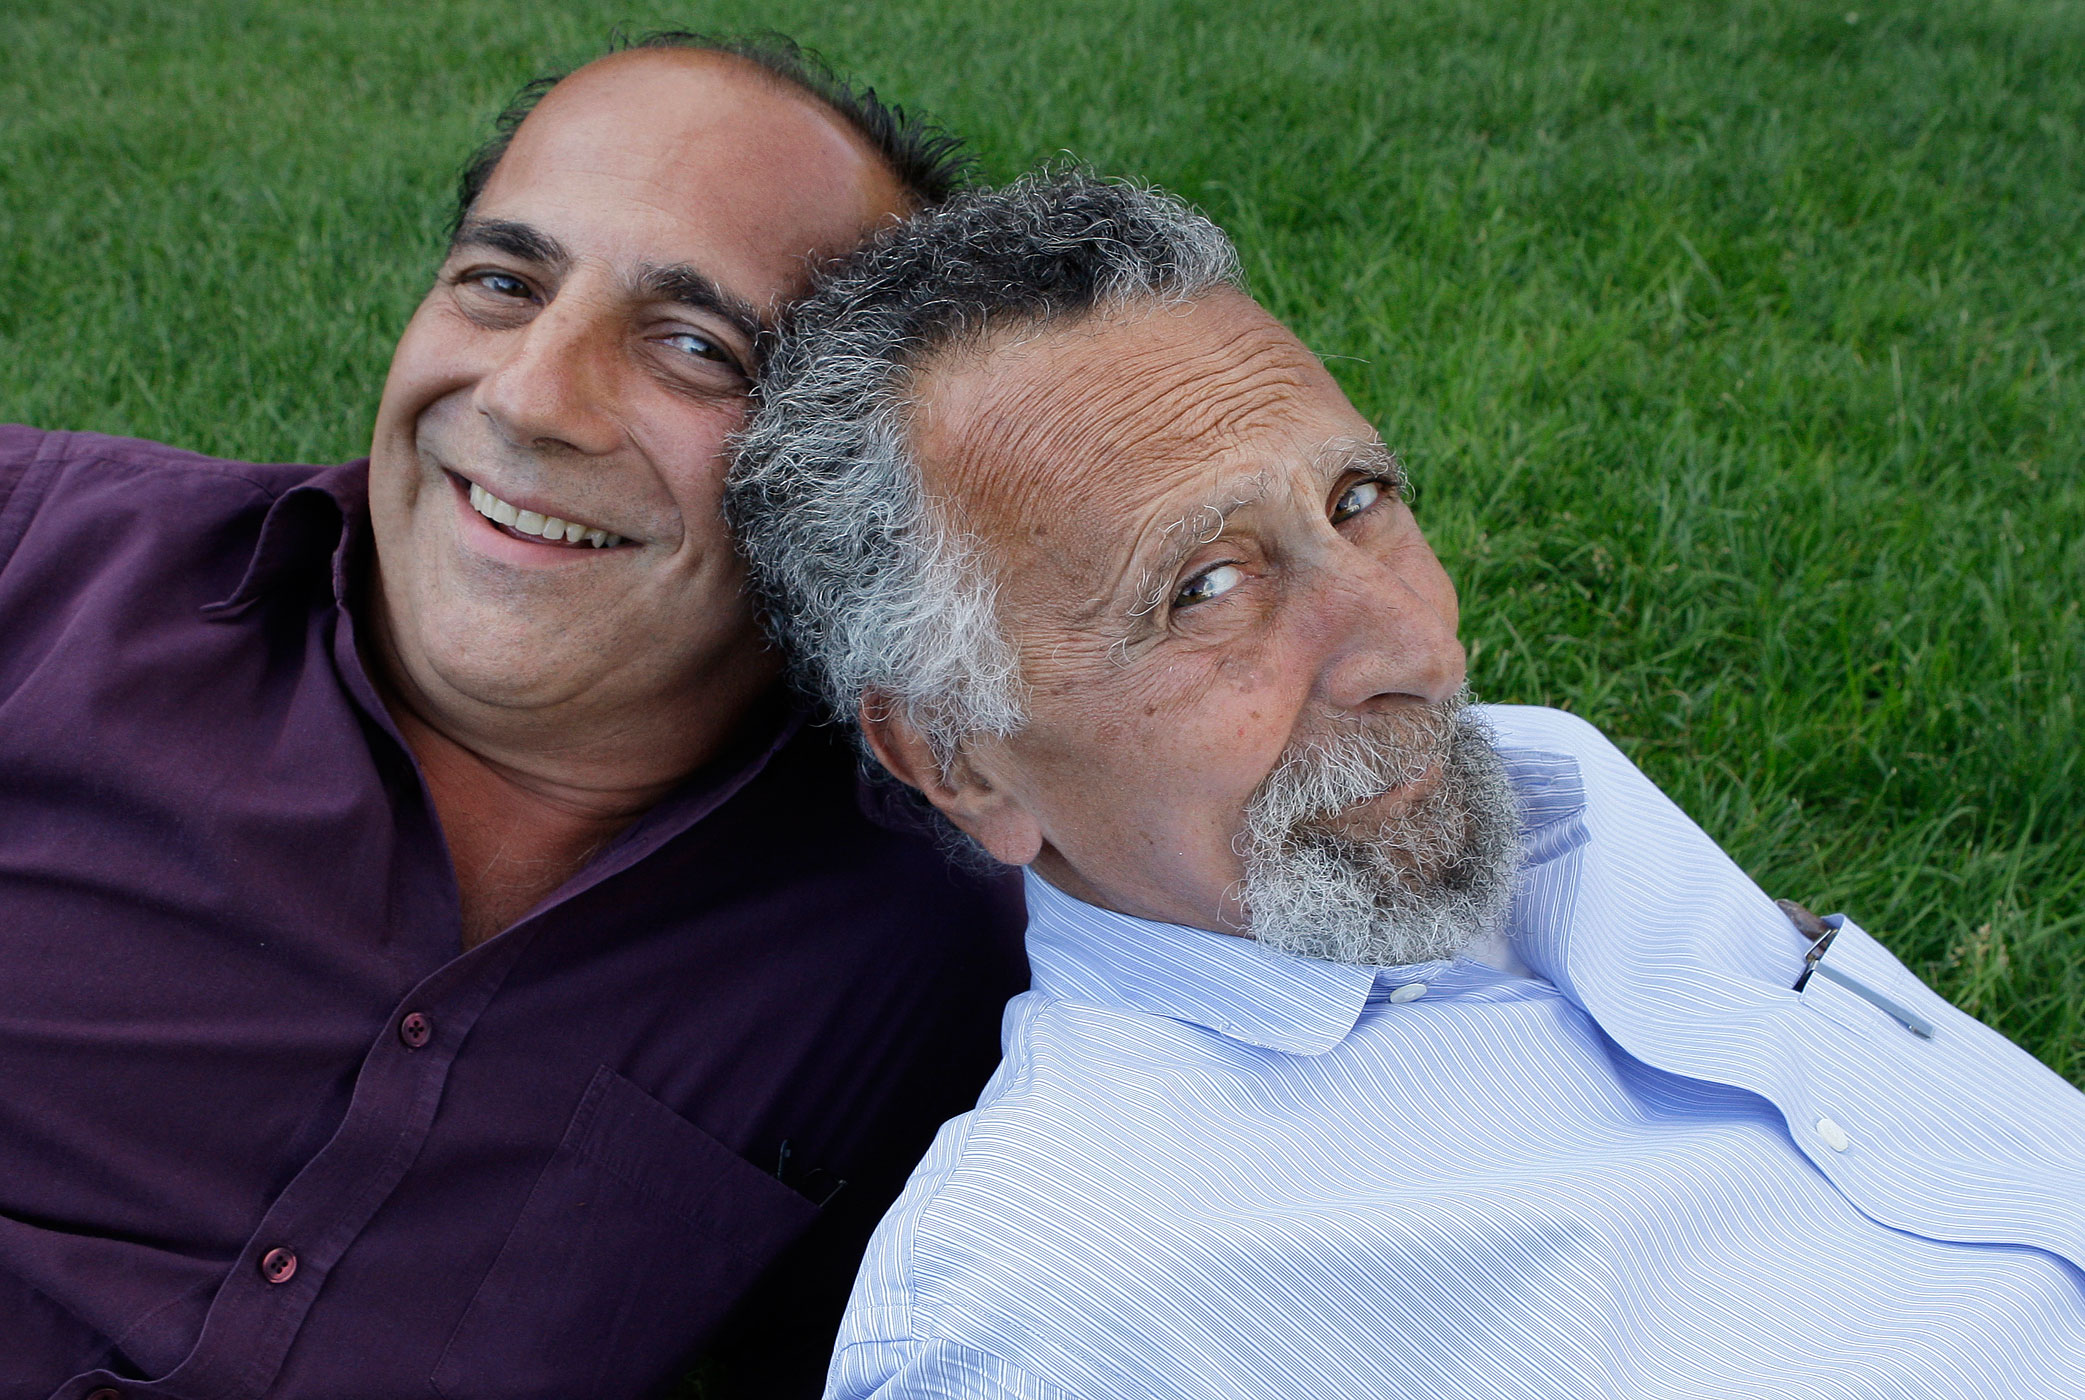 Brothers Ray, left, and Tom Magliozzi, co-hosts of National Public Radio's Car Talk, pose for a photo in Cambridge, Mass on June 19, 2008.